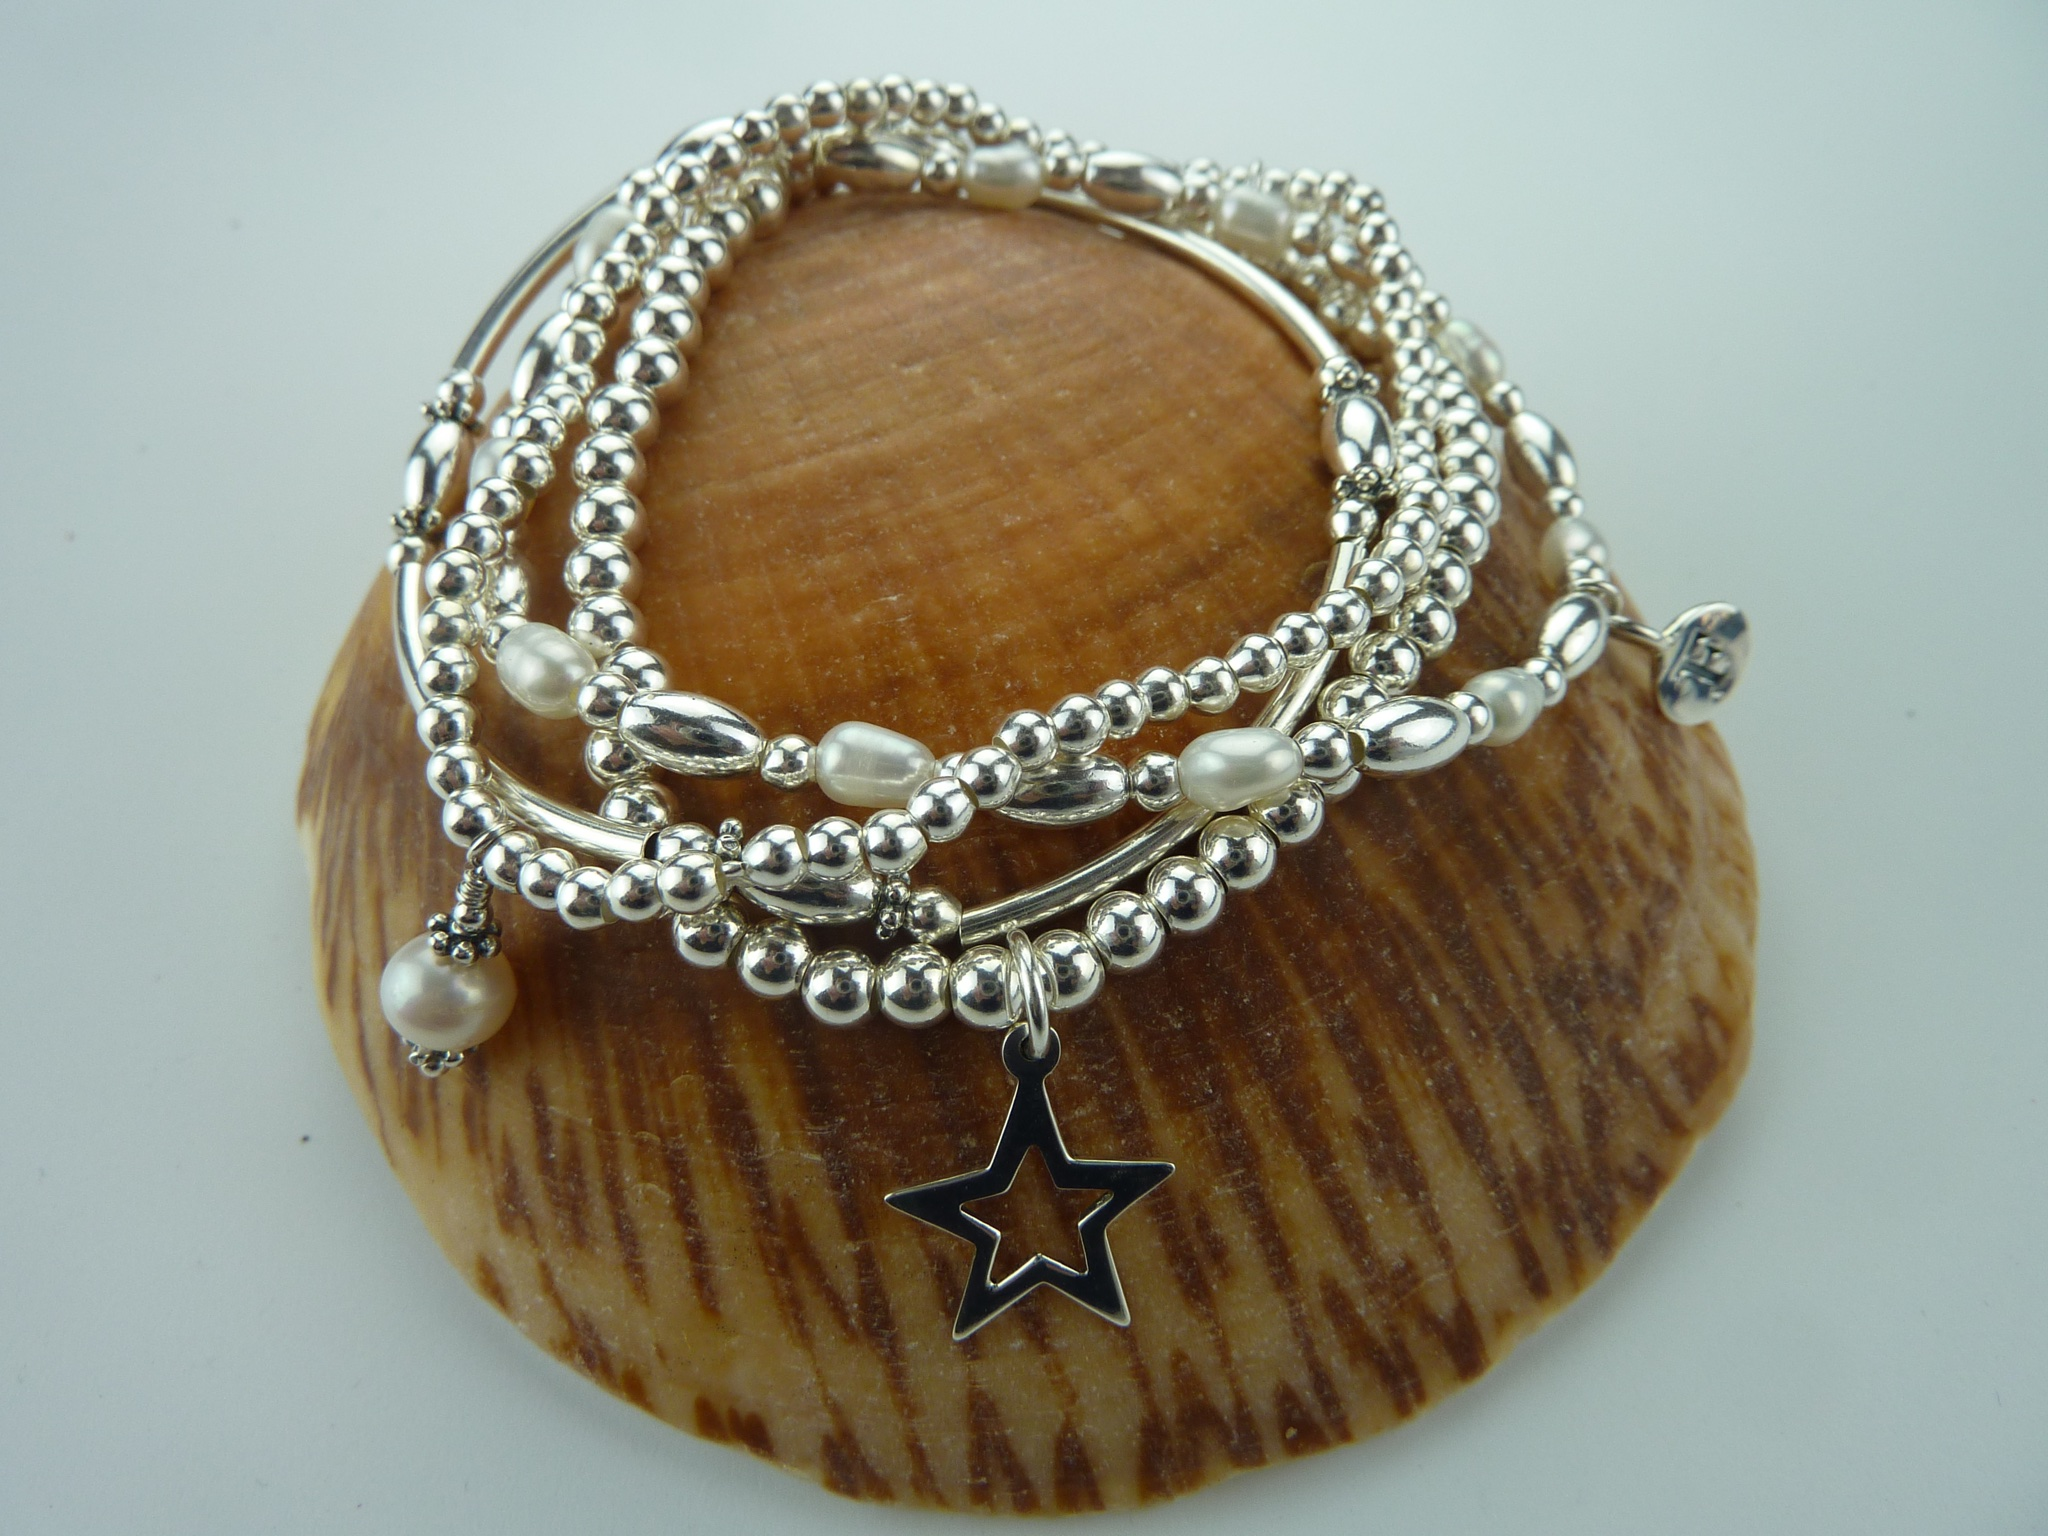 sterling silver bead bracelet with initial charm rocks